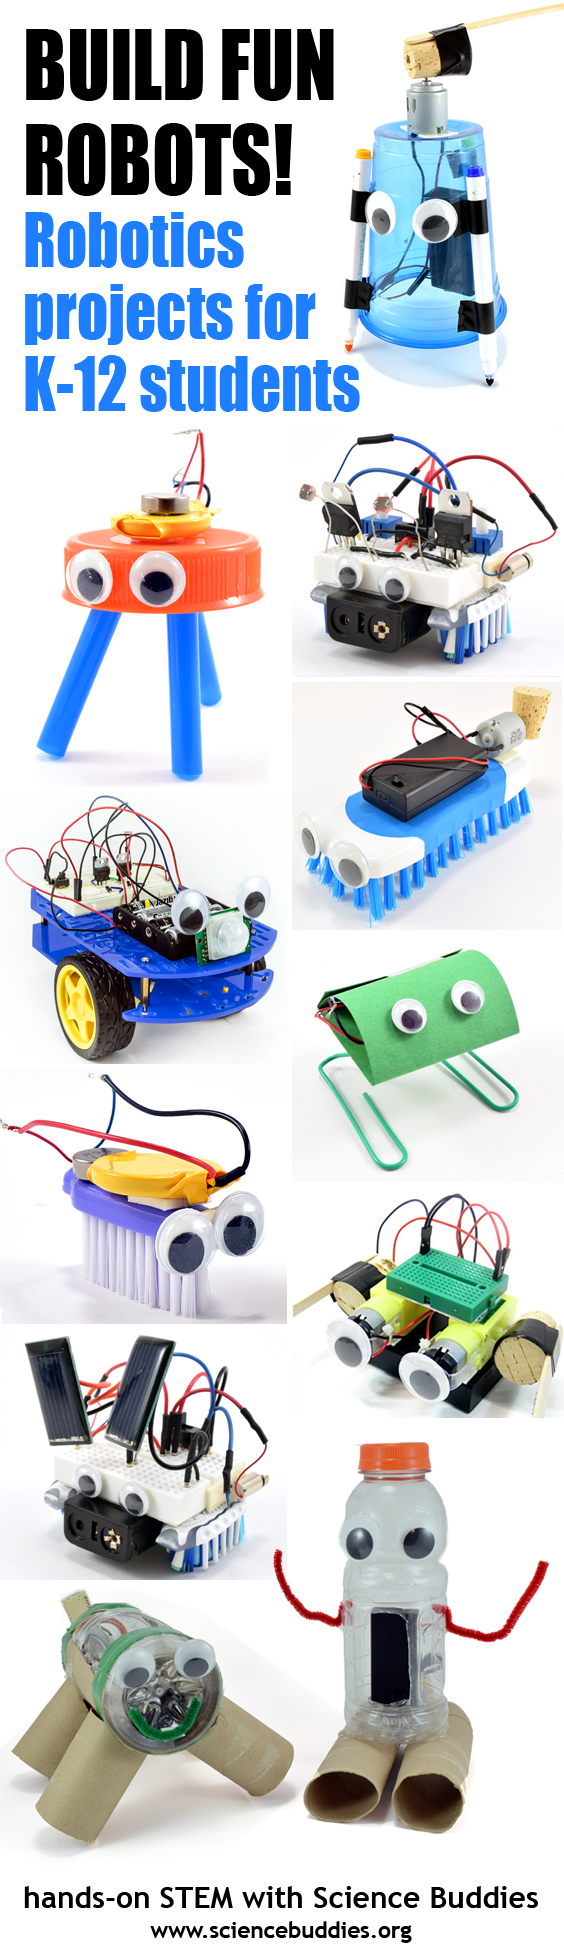 Build Fun Robots with Students / Collection of K-12 Robotics Projects from Science Buddies